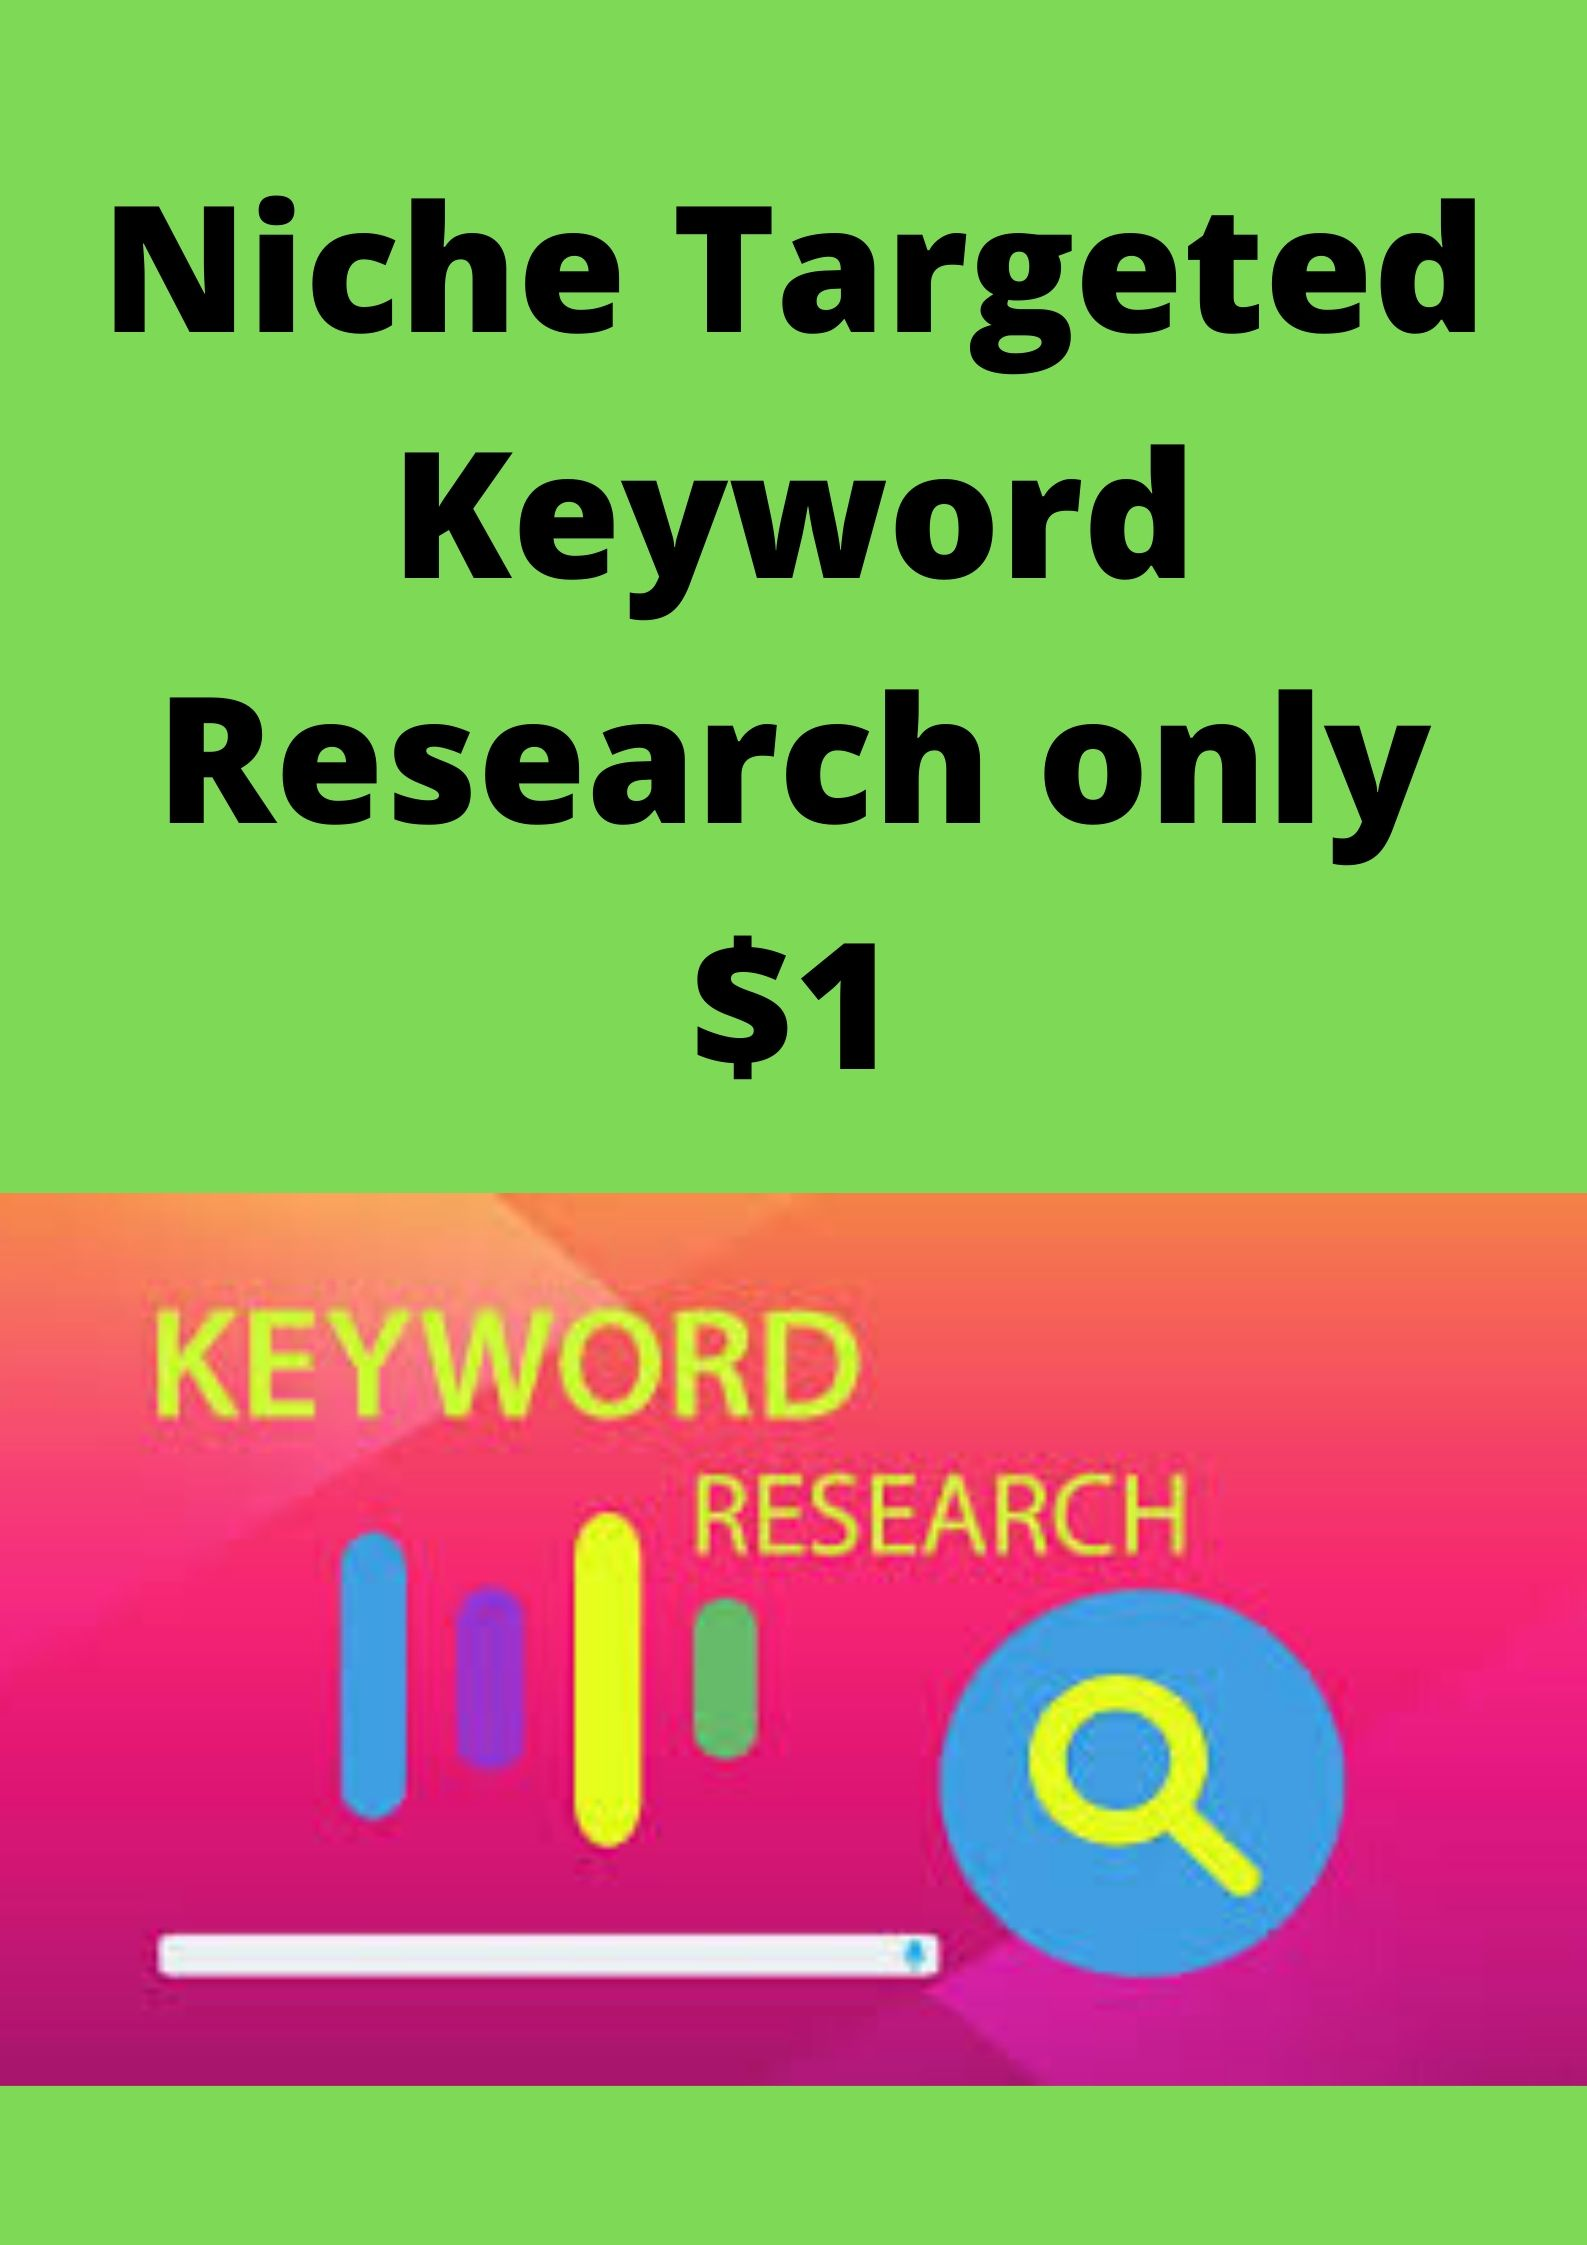 Niche Targeted Keyword Research